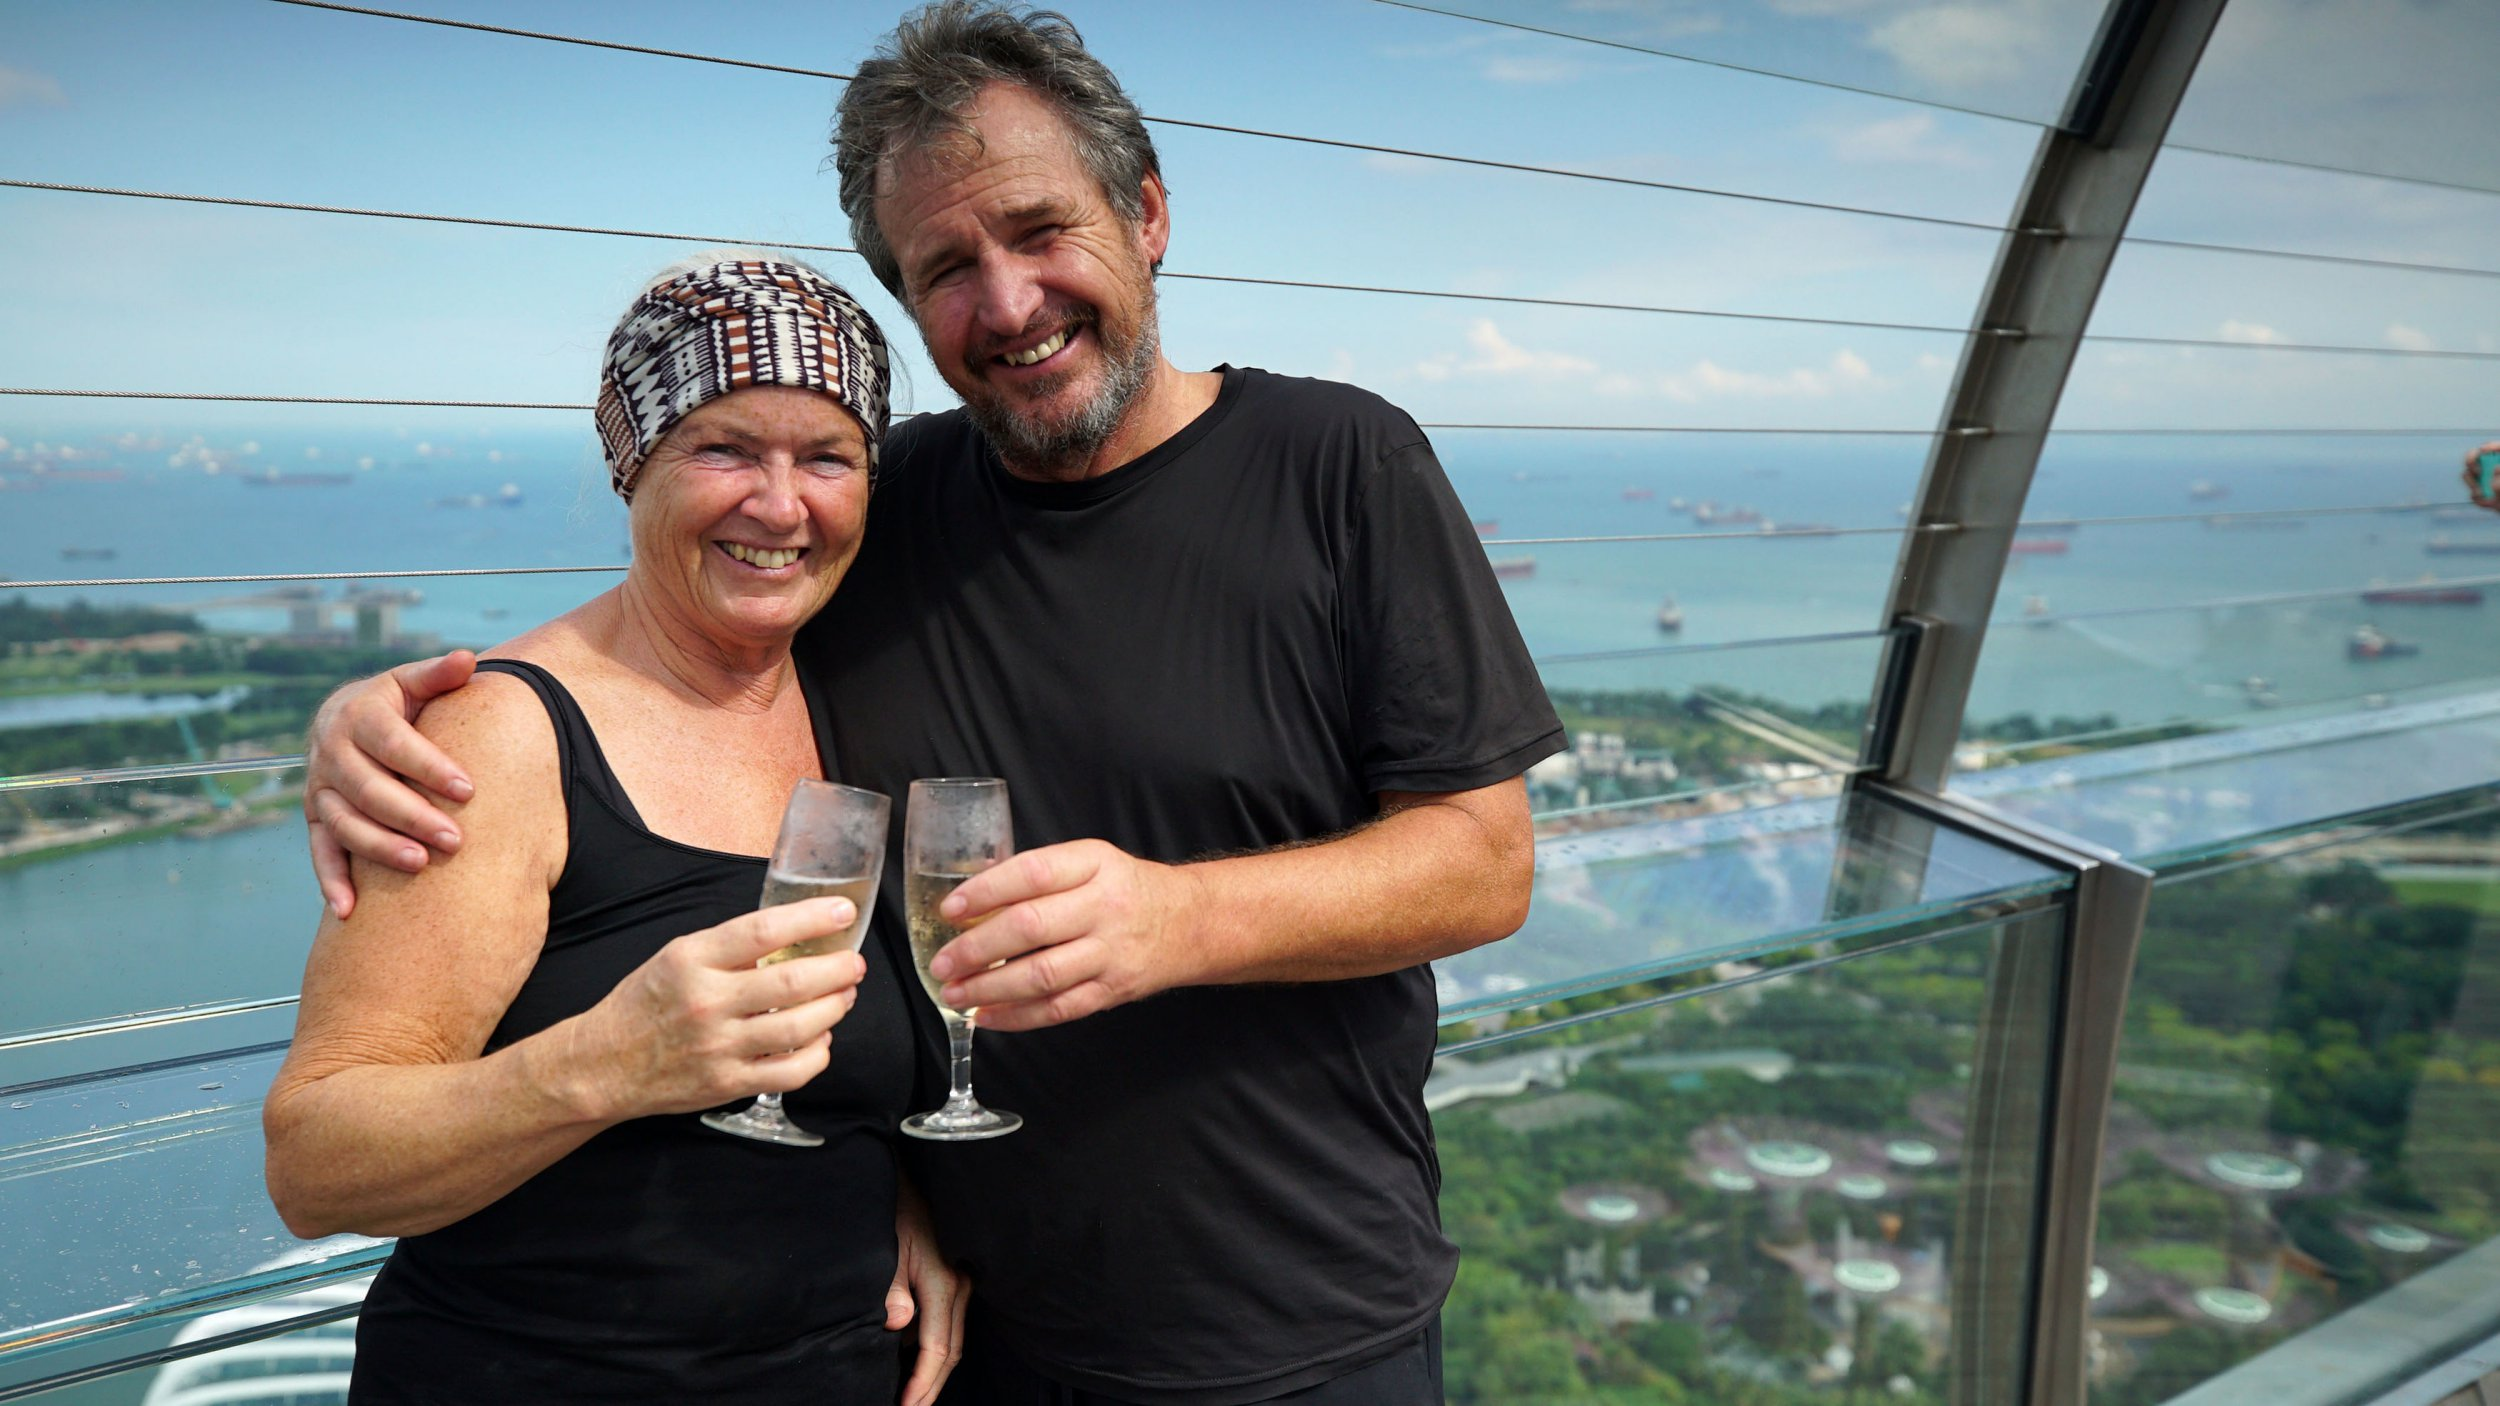 Race Across The World winners Tony and Elaine reveal how they're spending their prize money and it's so suitably pure